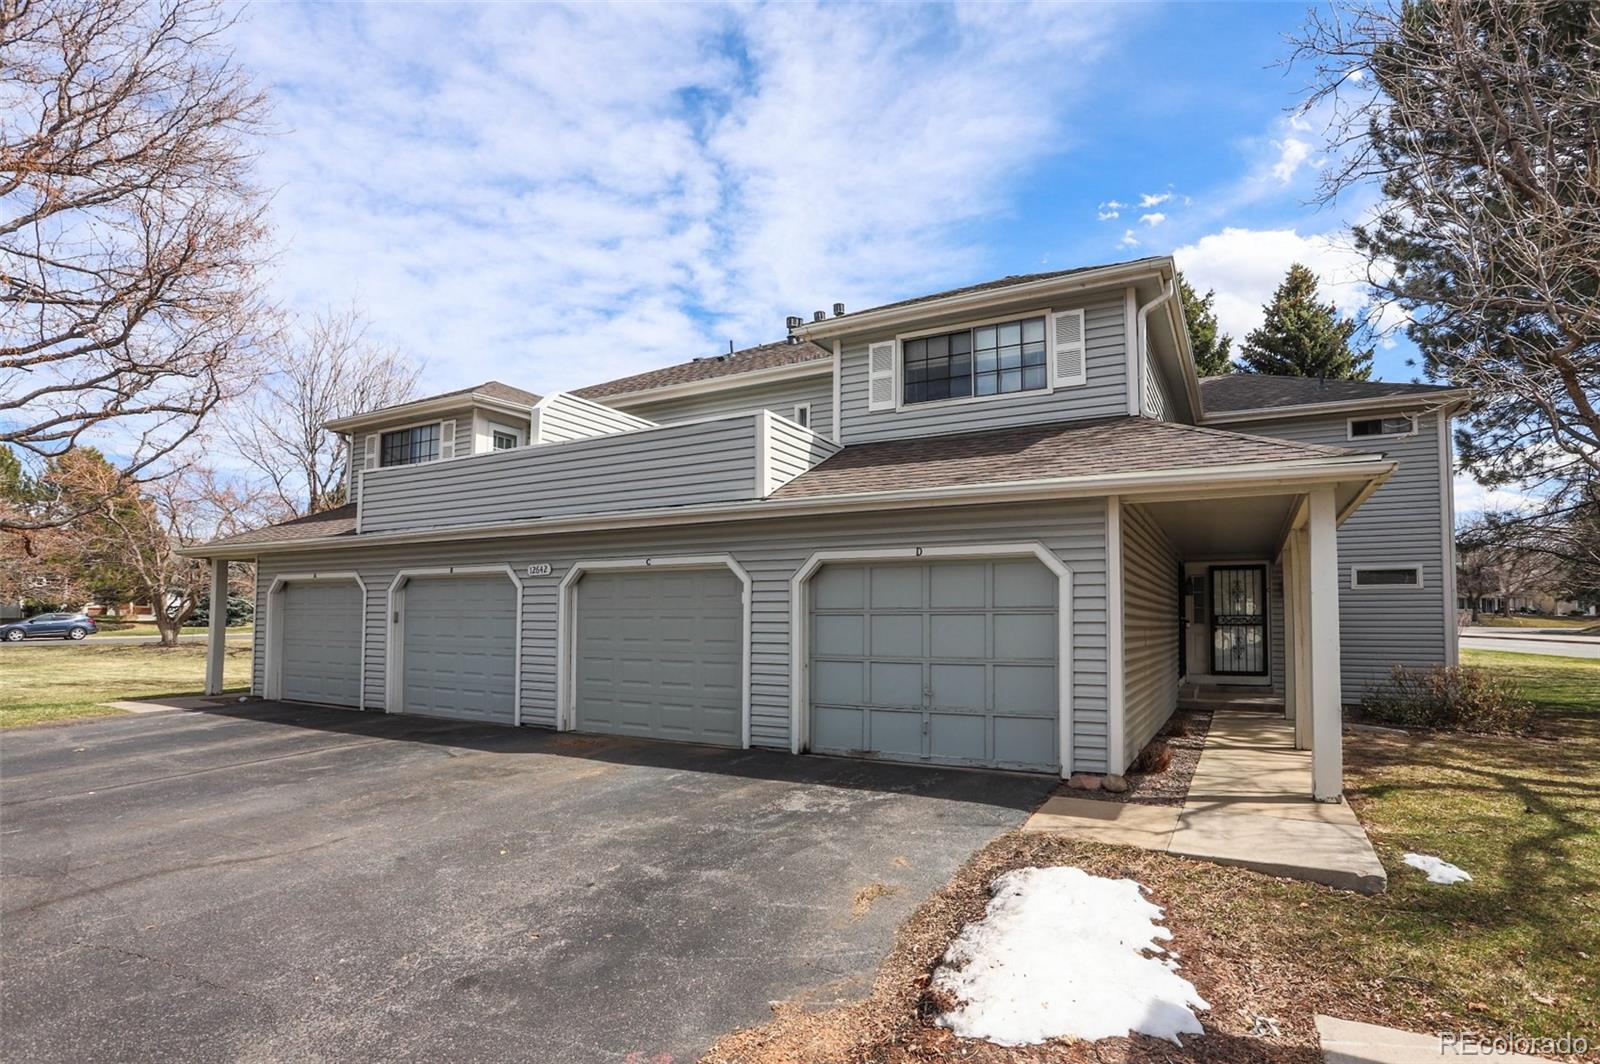 Beautifully remodeled condo in Champagne in Willowridge community! You won't be disappointed! Quality hardwood flooring, granite counters throughout, stainless steel appliances, large closets! This one has it all! Professionally cleaned! This is a home you can self quarantine in!